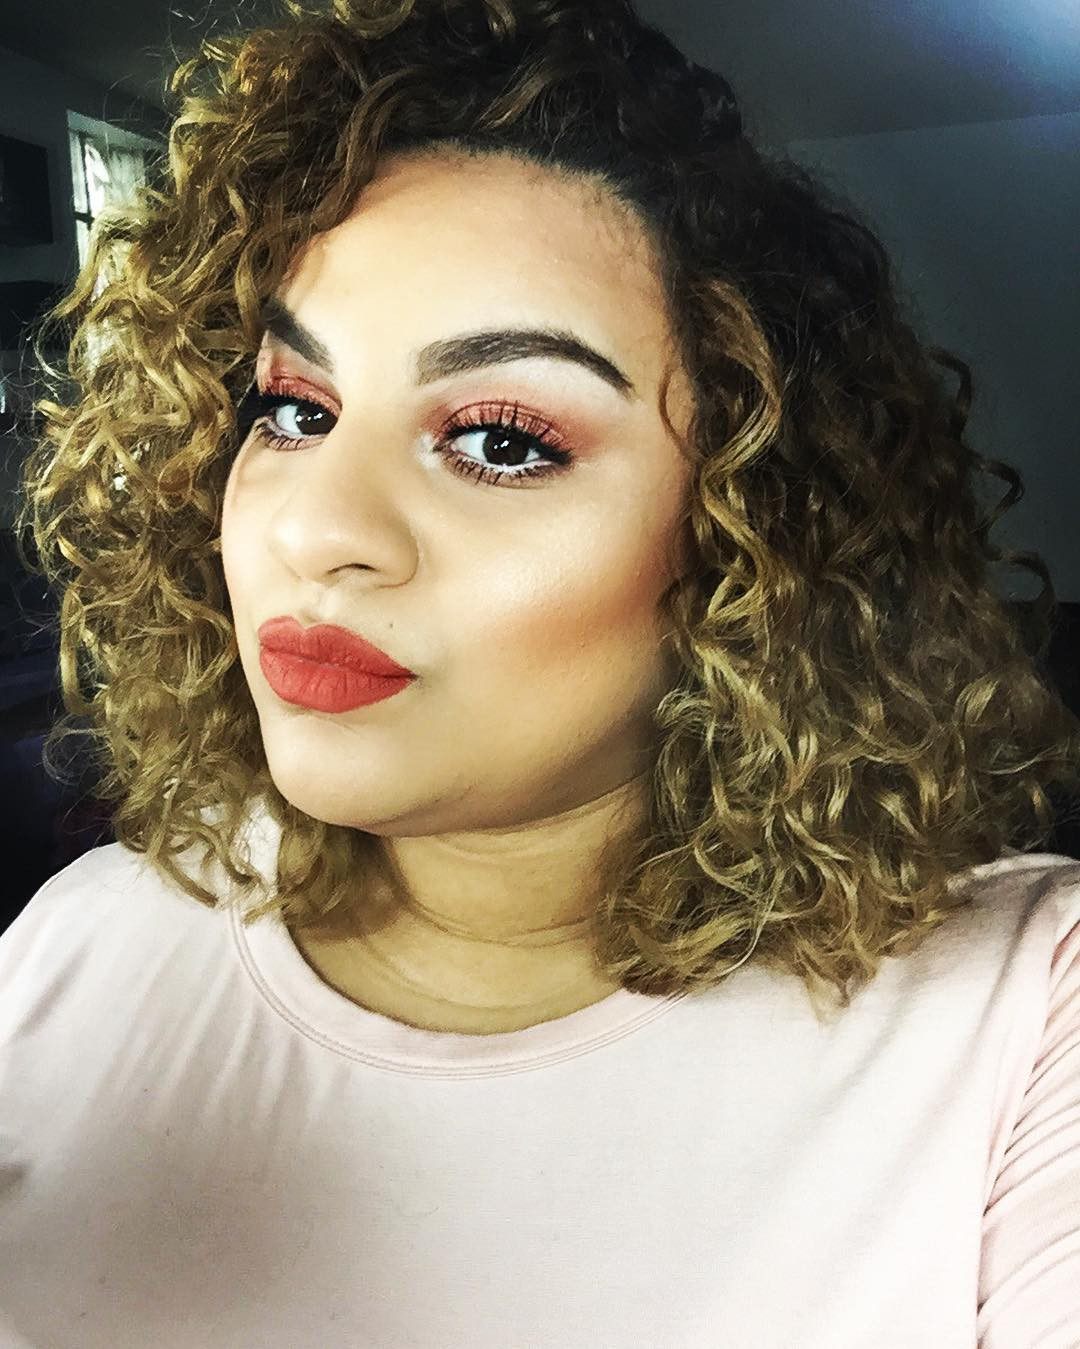 Naturally Curly Hair Hairstyles  25 Natural Curly Hairstyle Designs Ideas